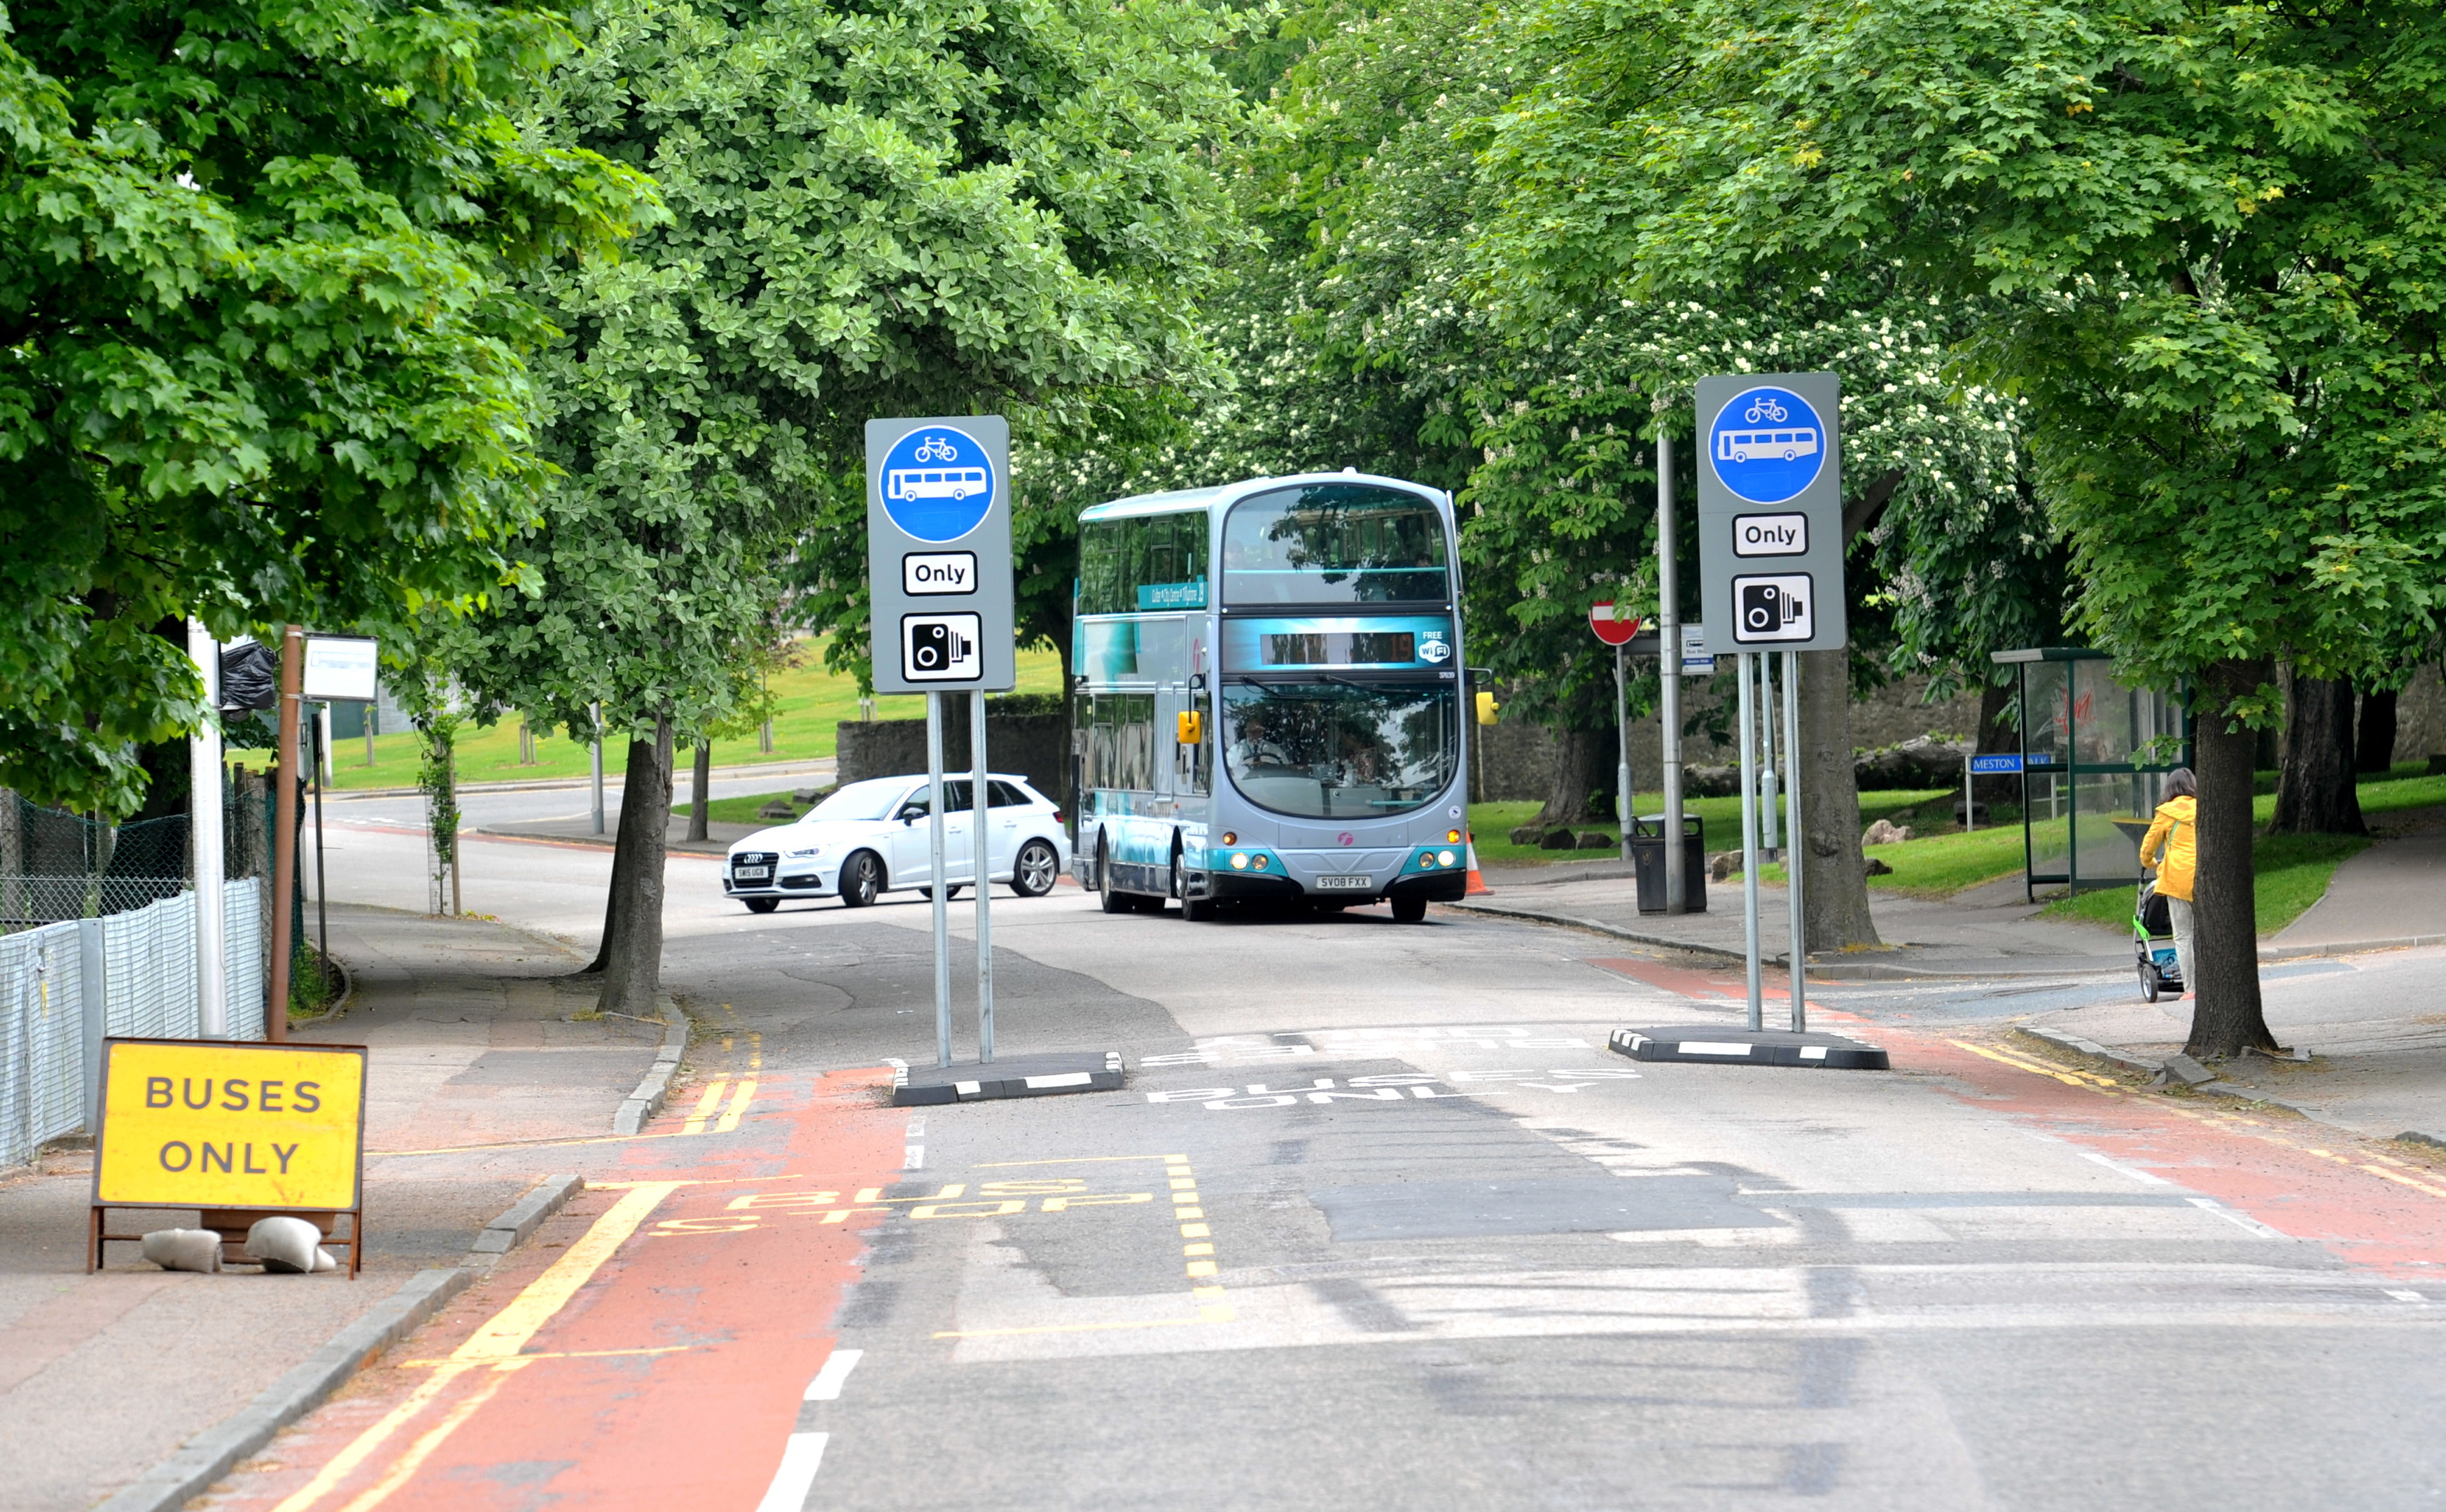 Only buses and cyclists have been able to use the road since the measure was introduced, but concerns have been raised over its impact.